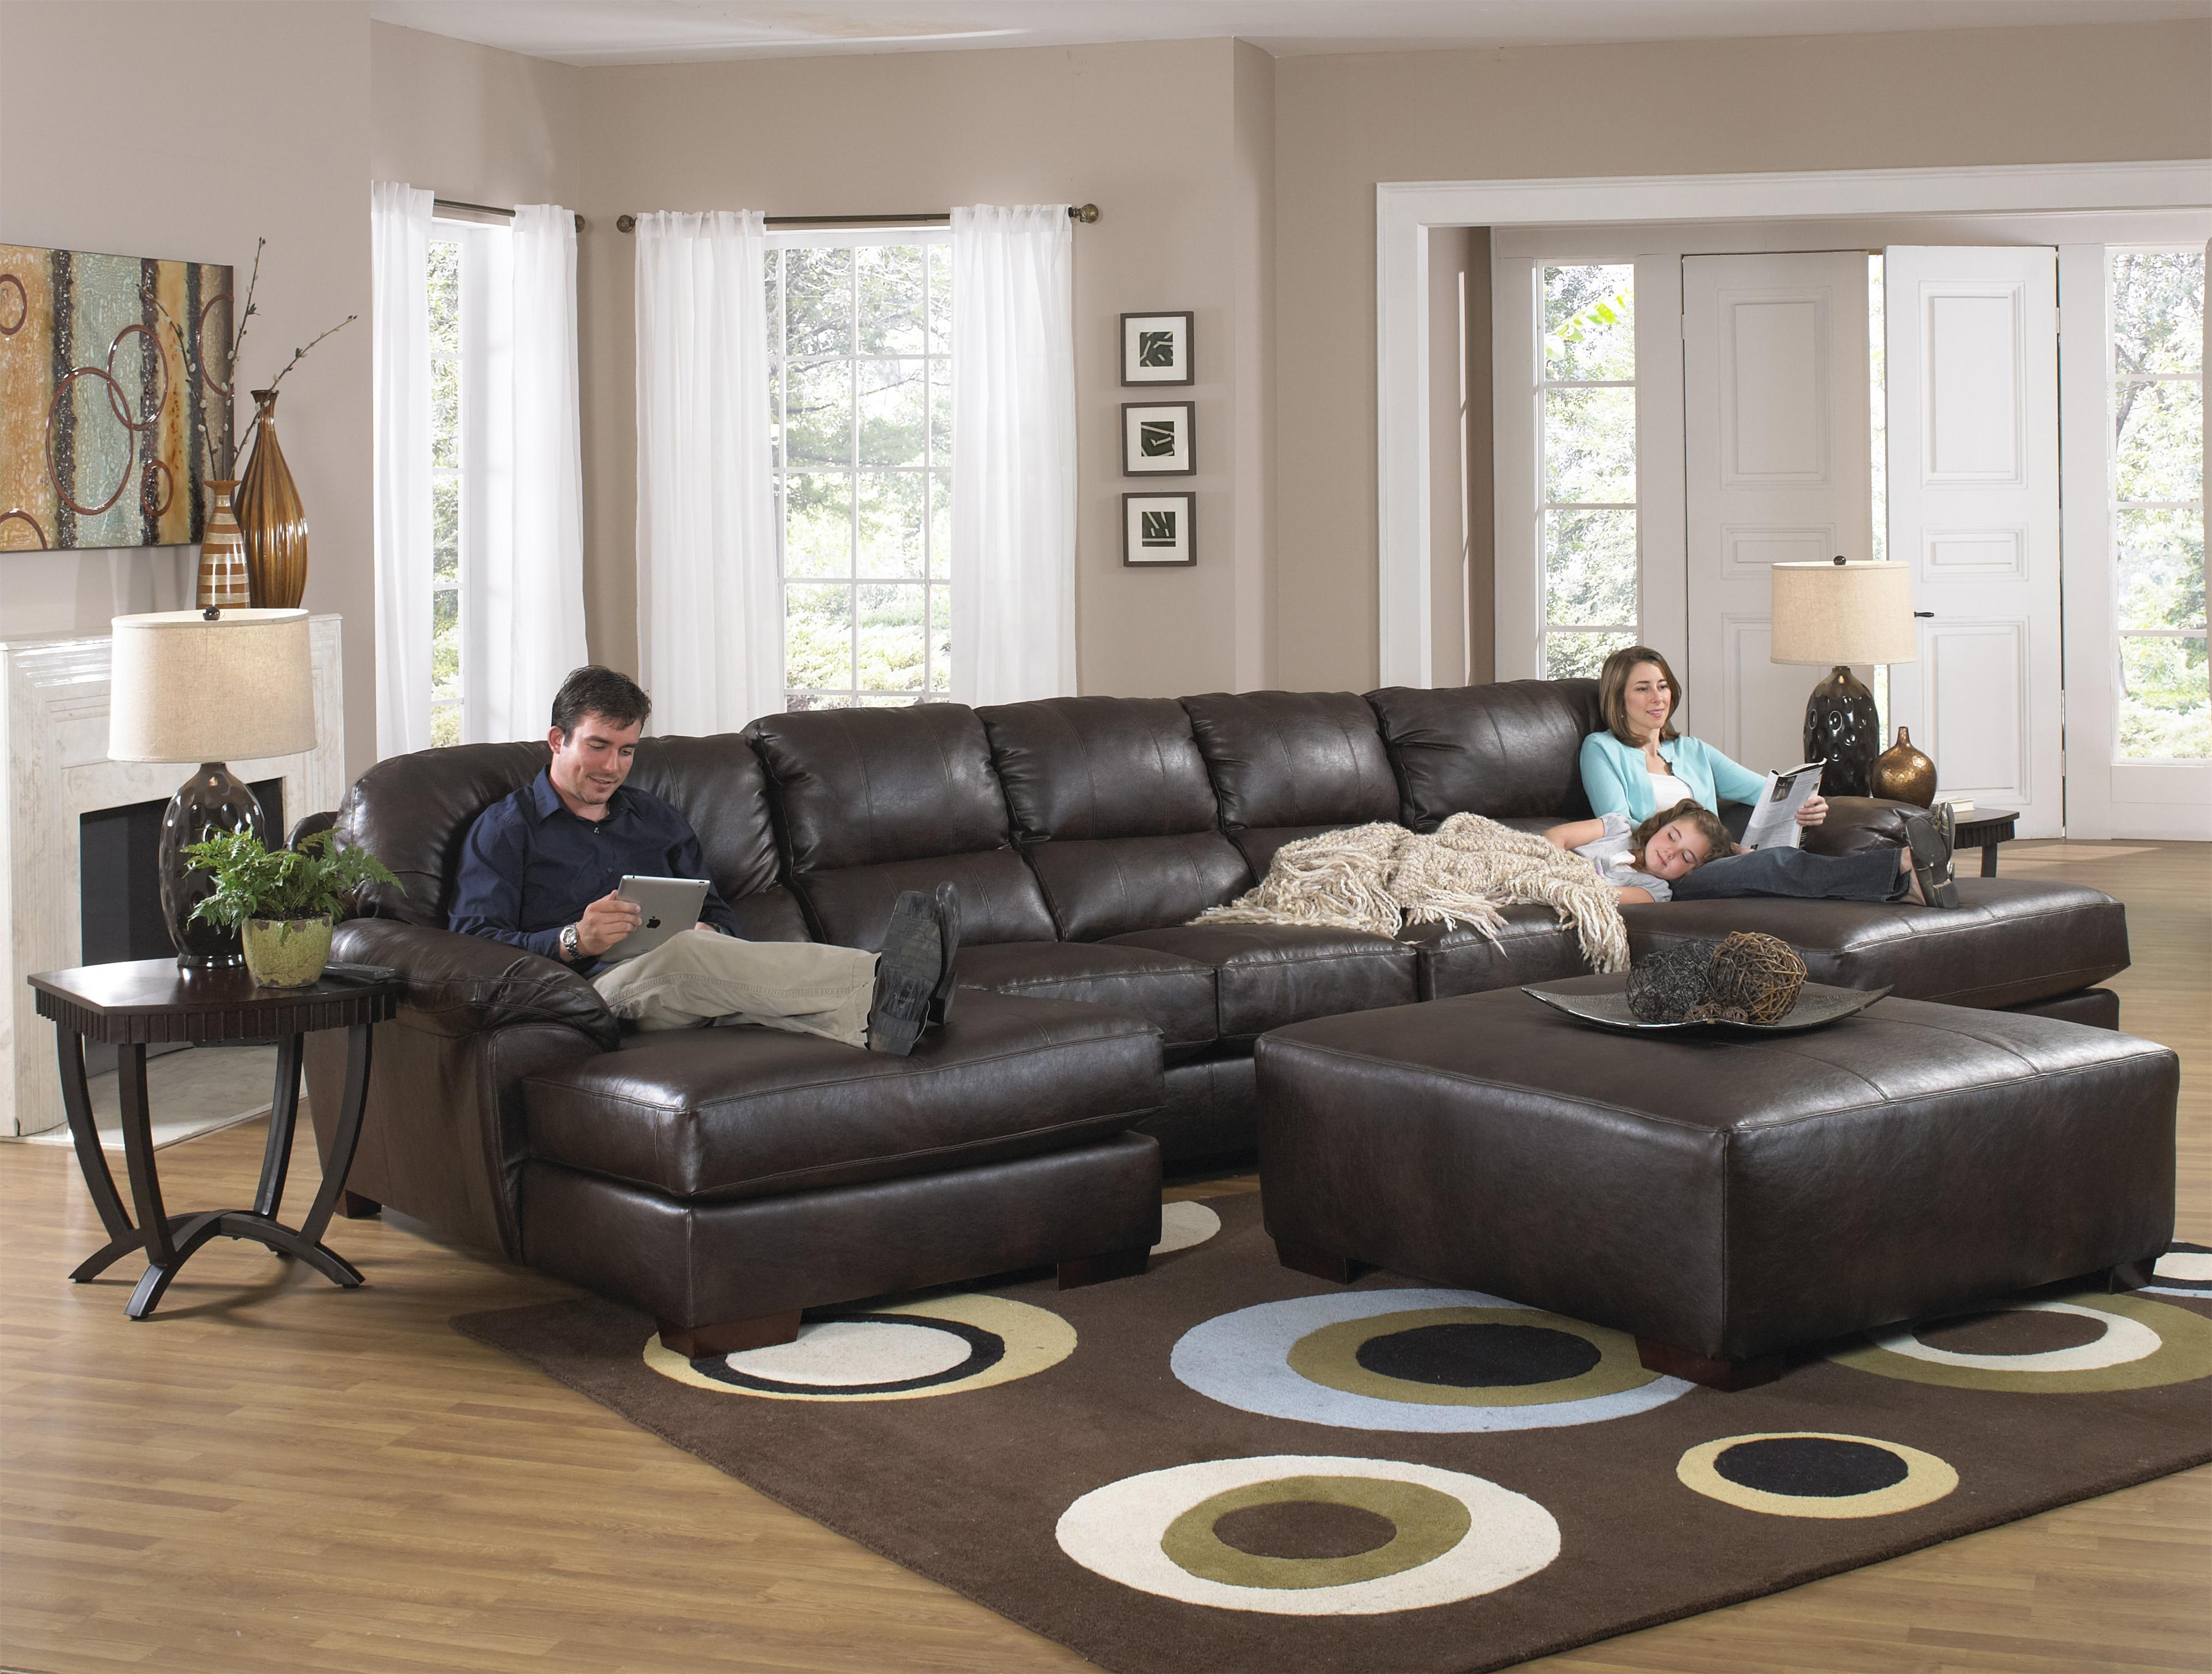 Most Recent Two Chaise Sectional Sofa With Five Total Seatsjackson With Double Chaise Sofas (View 8 of 15)